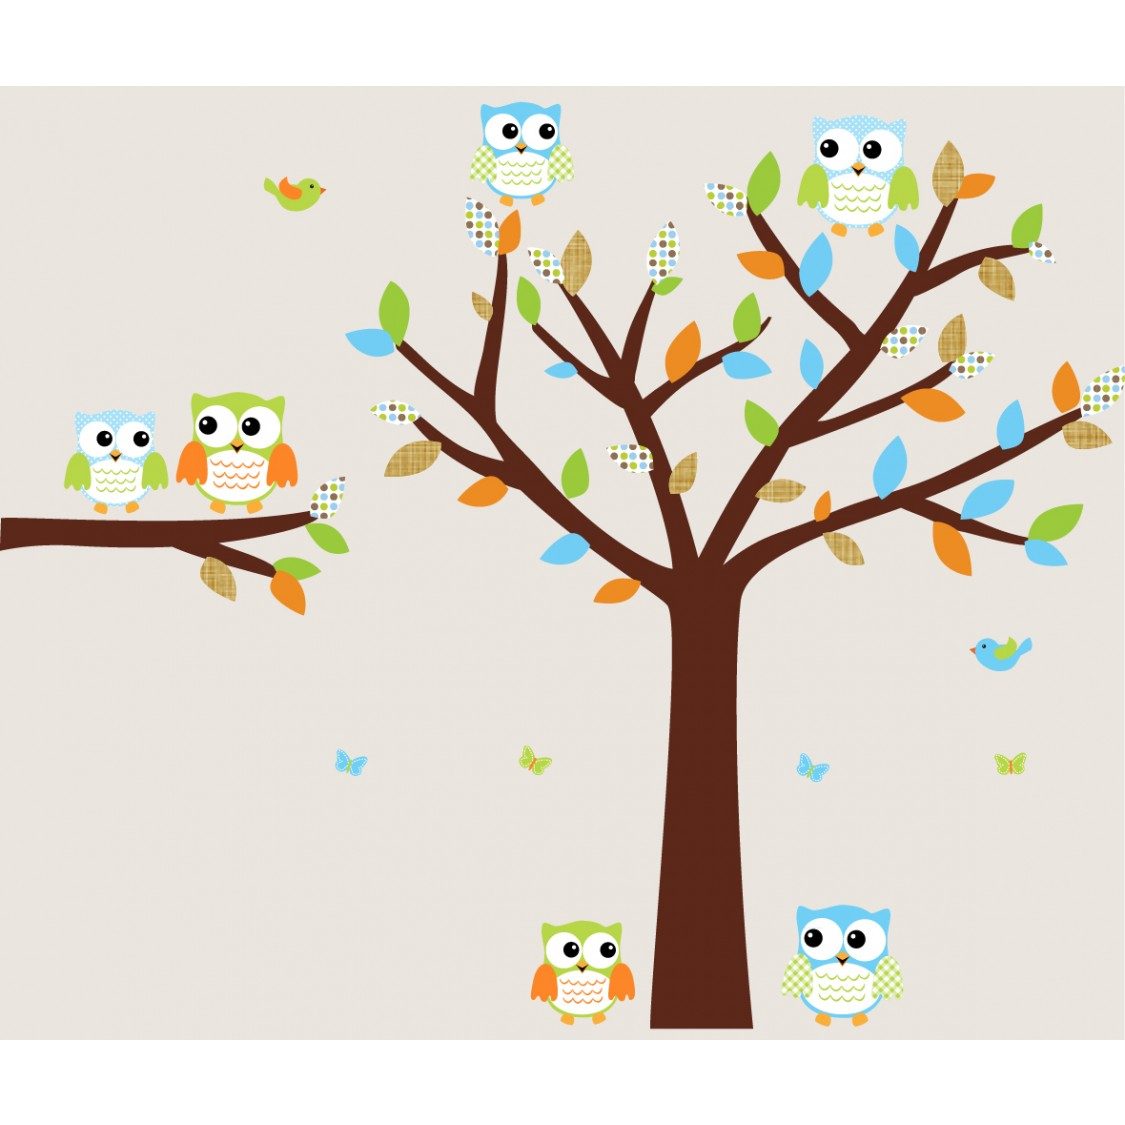 Attractive Colorful Owl Tree Wall Decal With Wall Decals Trees For Boys Bedrooms